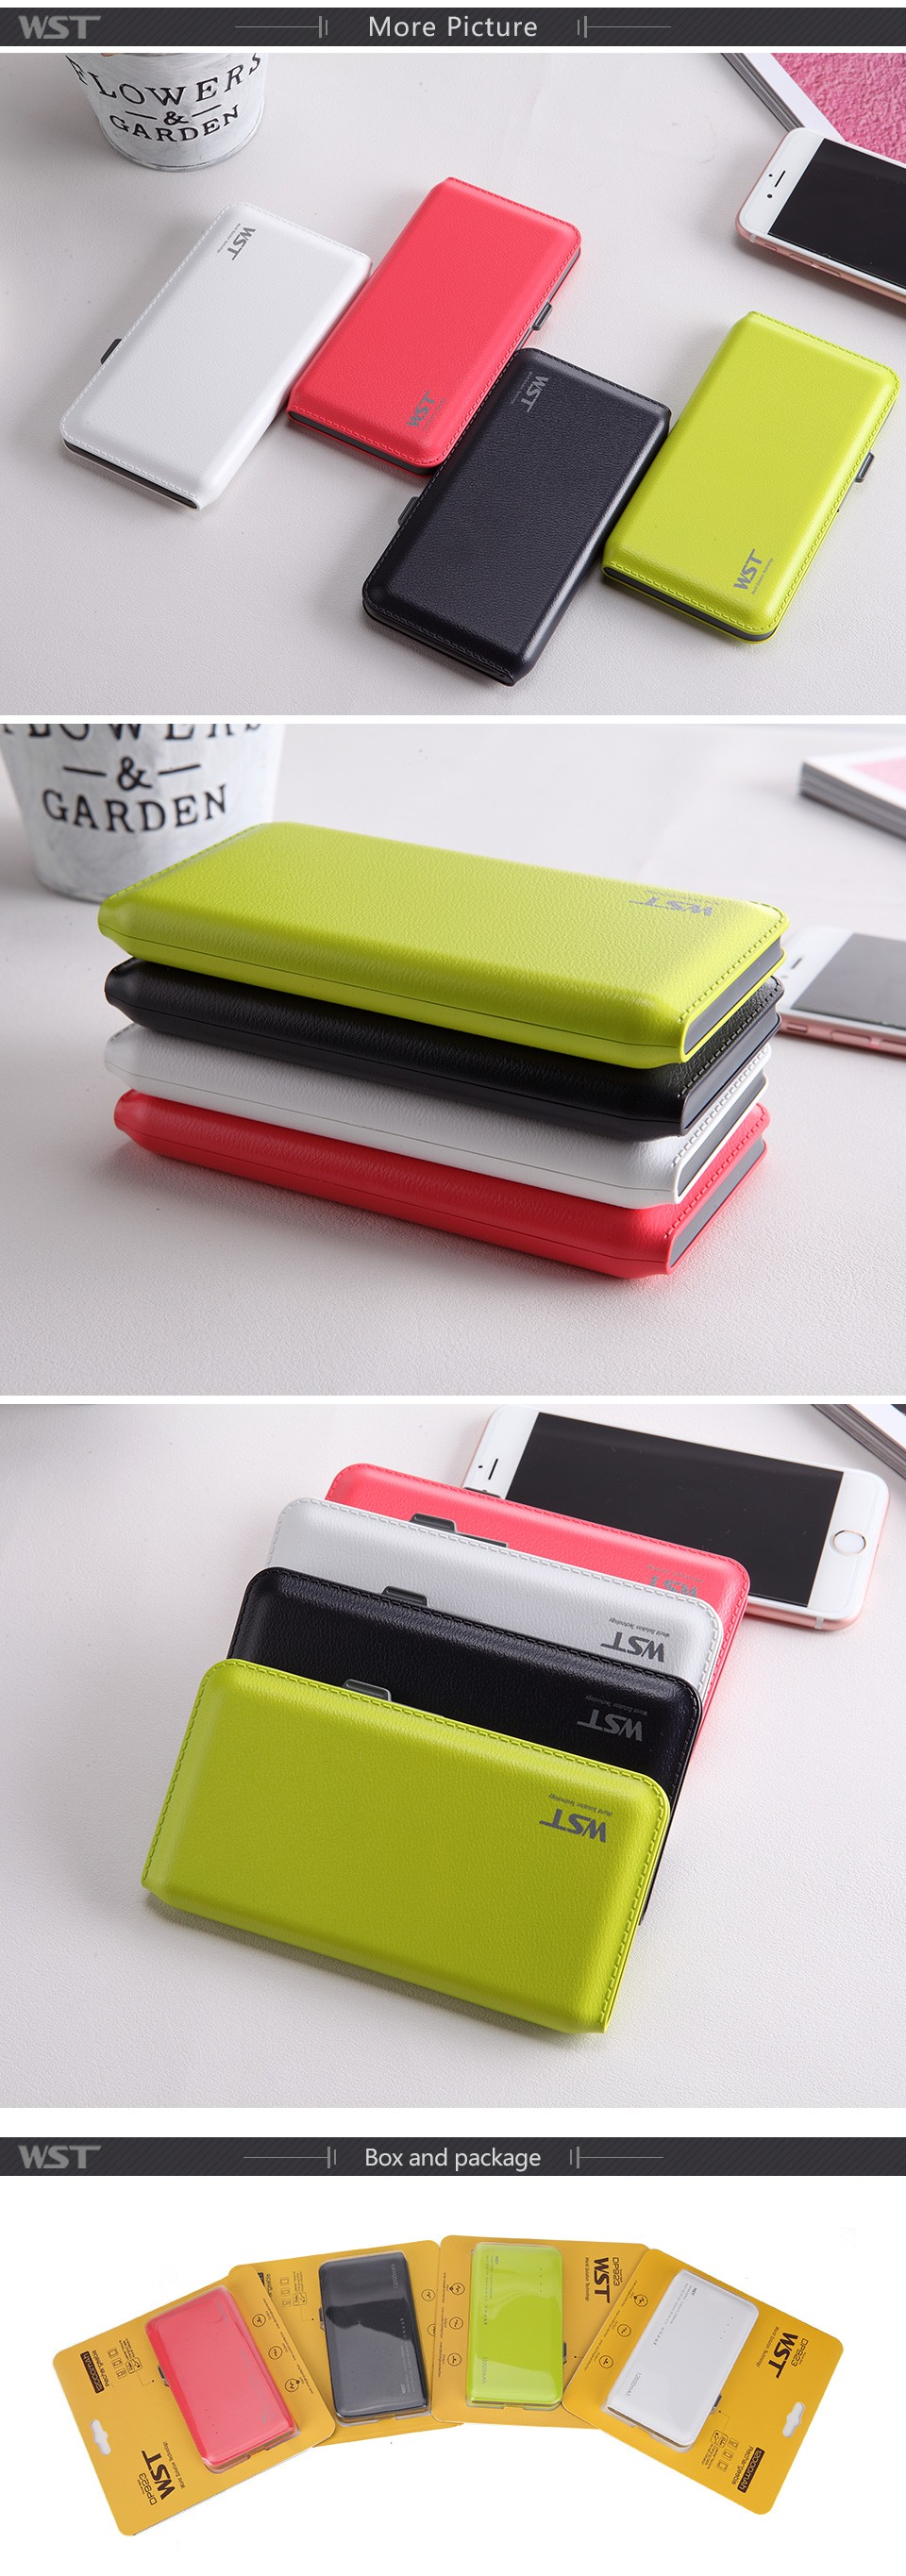 Easy carry dual usb port built-in cable leather power bank 12000 mah